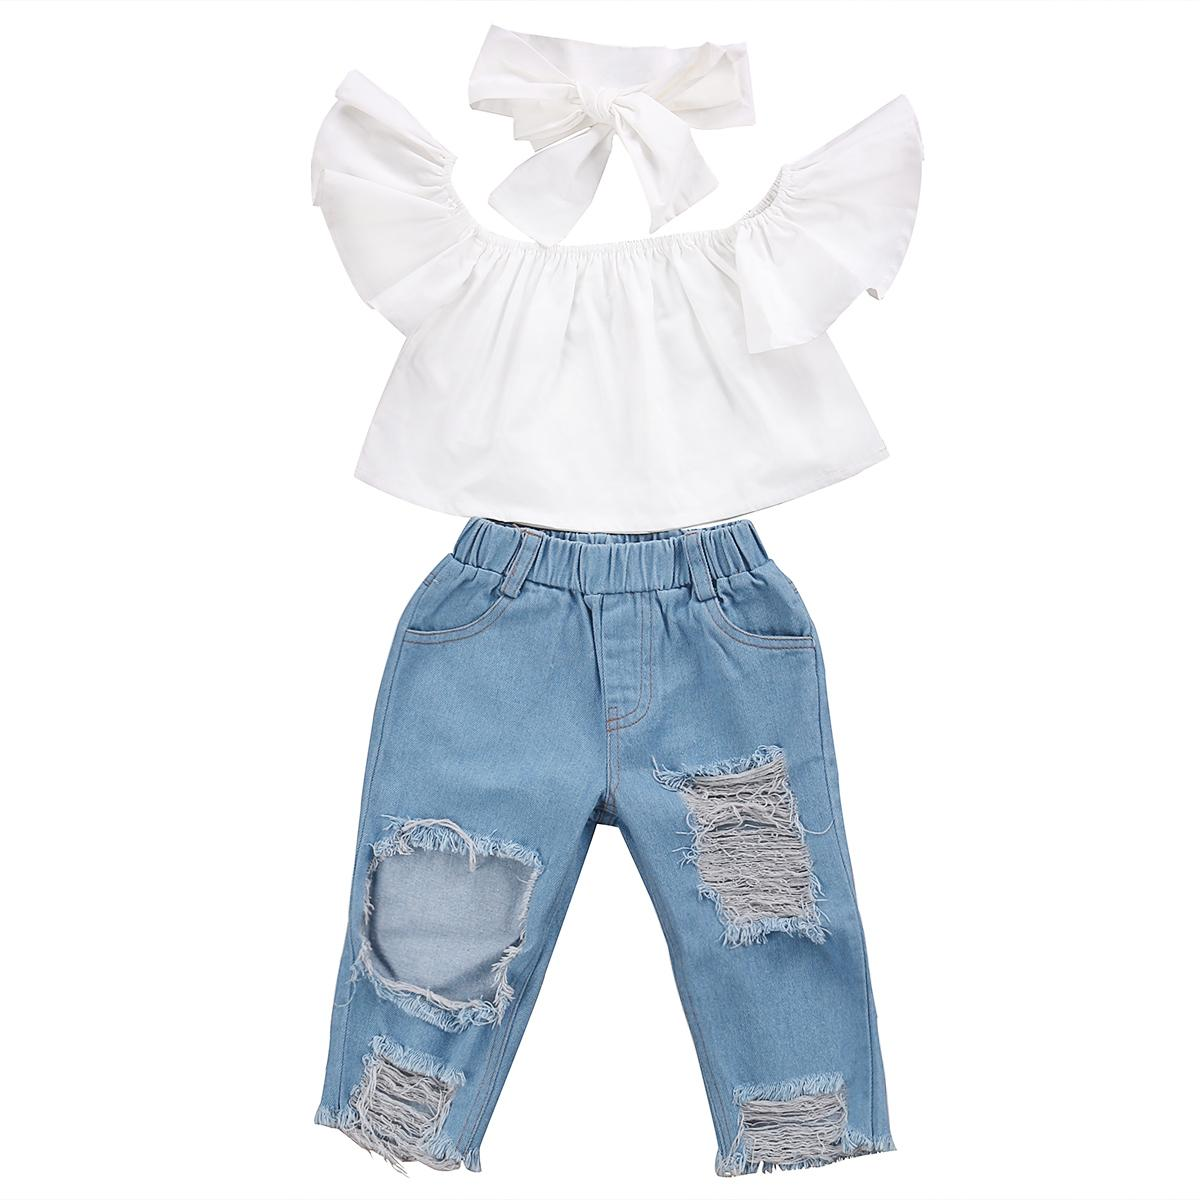 22e42757e7328 2019 Fashion Casual Toddler Kid Girls Clothing Off Shoulder Tops +Hole  Denim Pants Jeans Outfits Set Clothes Y1891409 From Shenping02